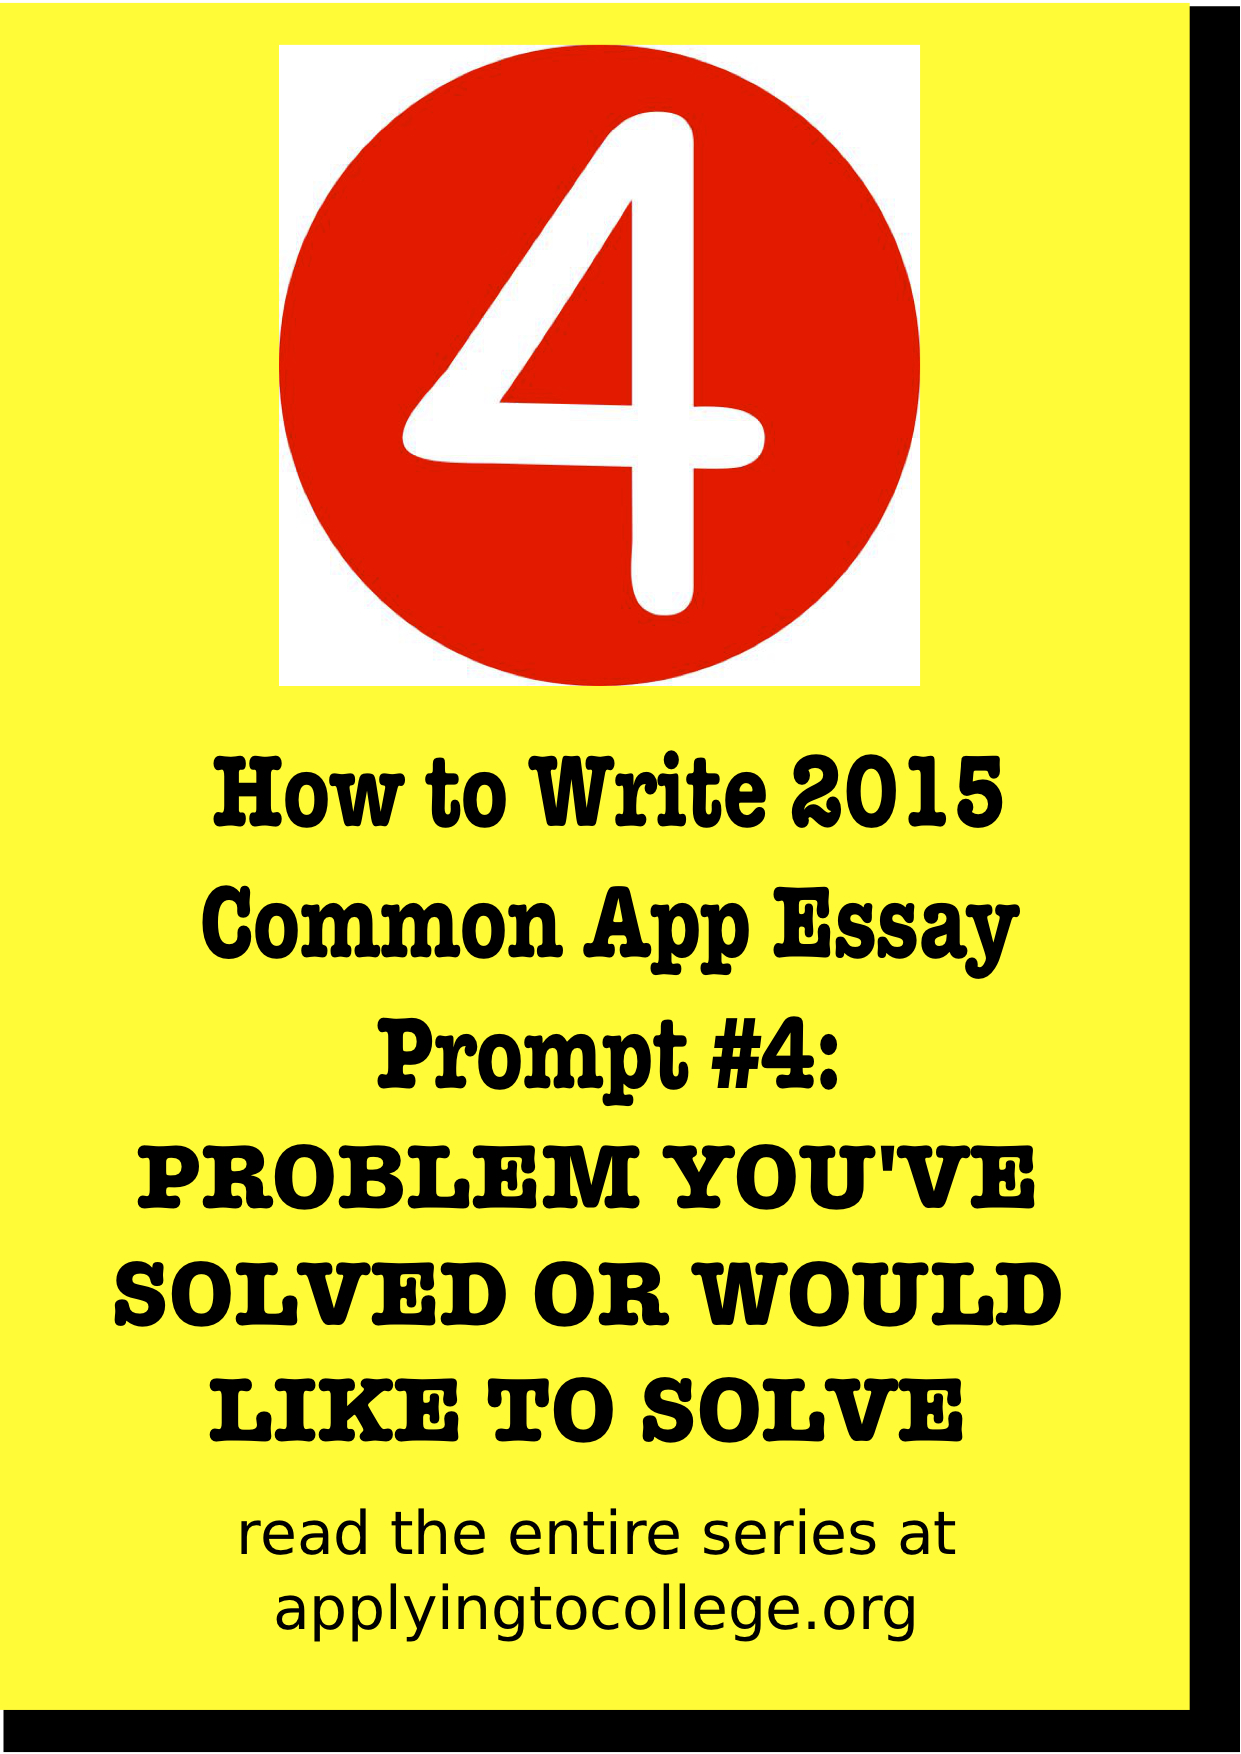 005 How To Write Common App Problem Essay Example Surprising Help Examples 2018 That Worked Full